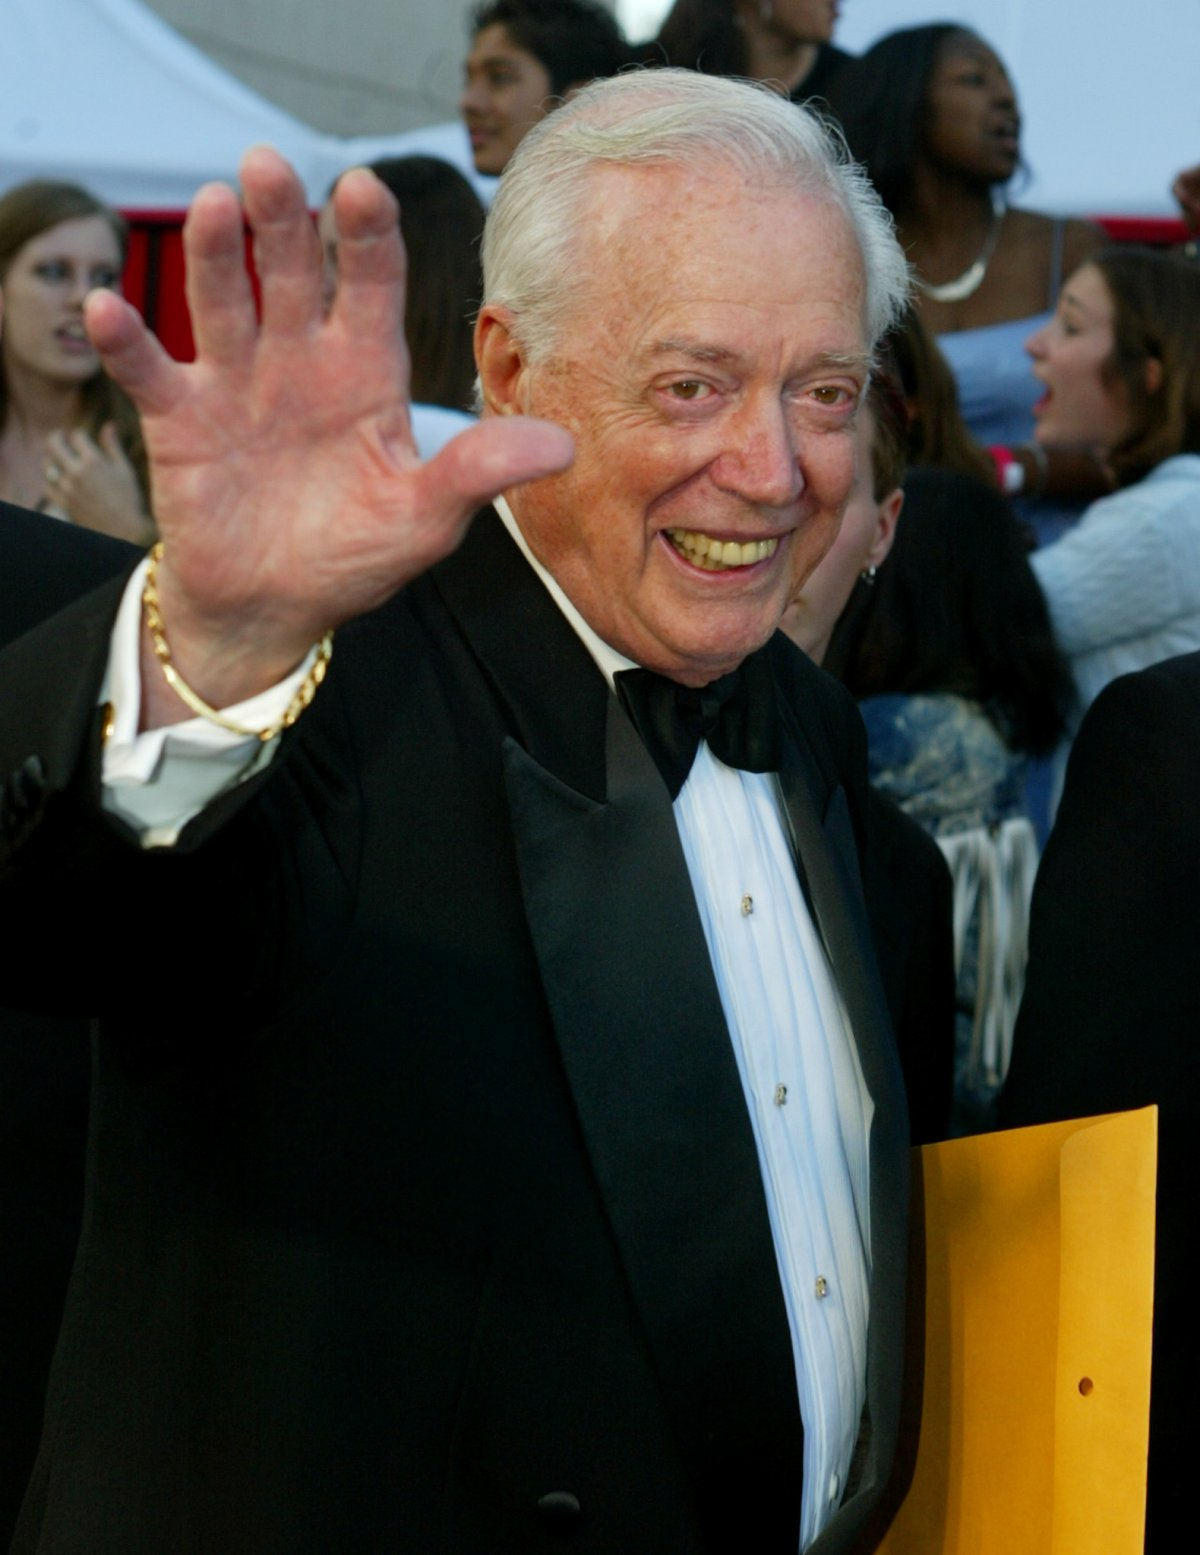 """FILE PHOTO: Hugh Downs, former host of the ABC news program """"20/20"""" poses as he arrives for the ABC television networks 50th anniversary in Hollywood, U.S., March 16, 2003."""